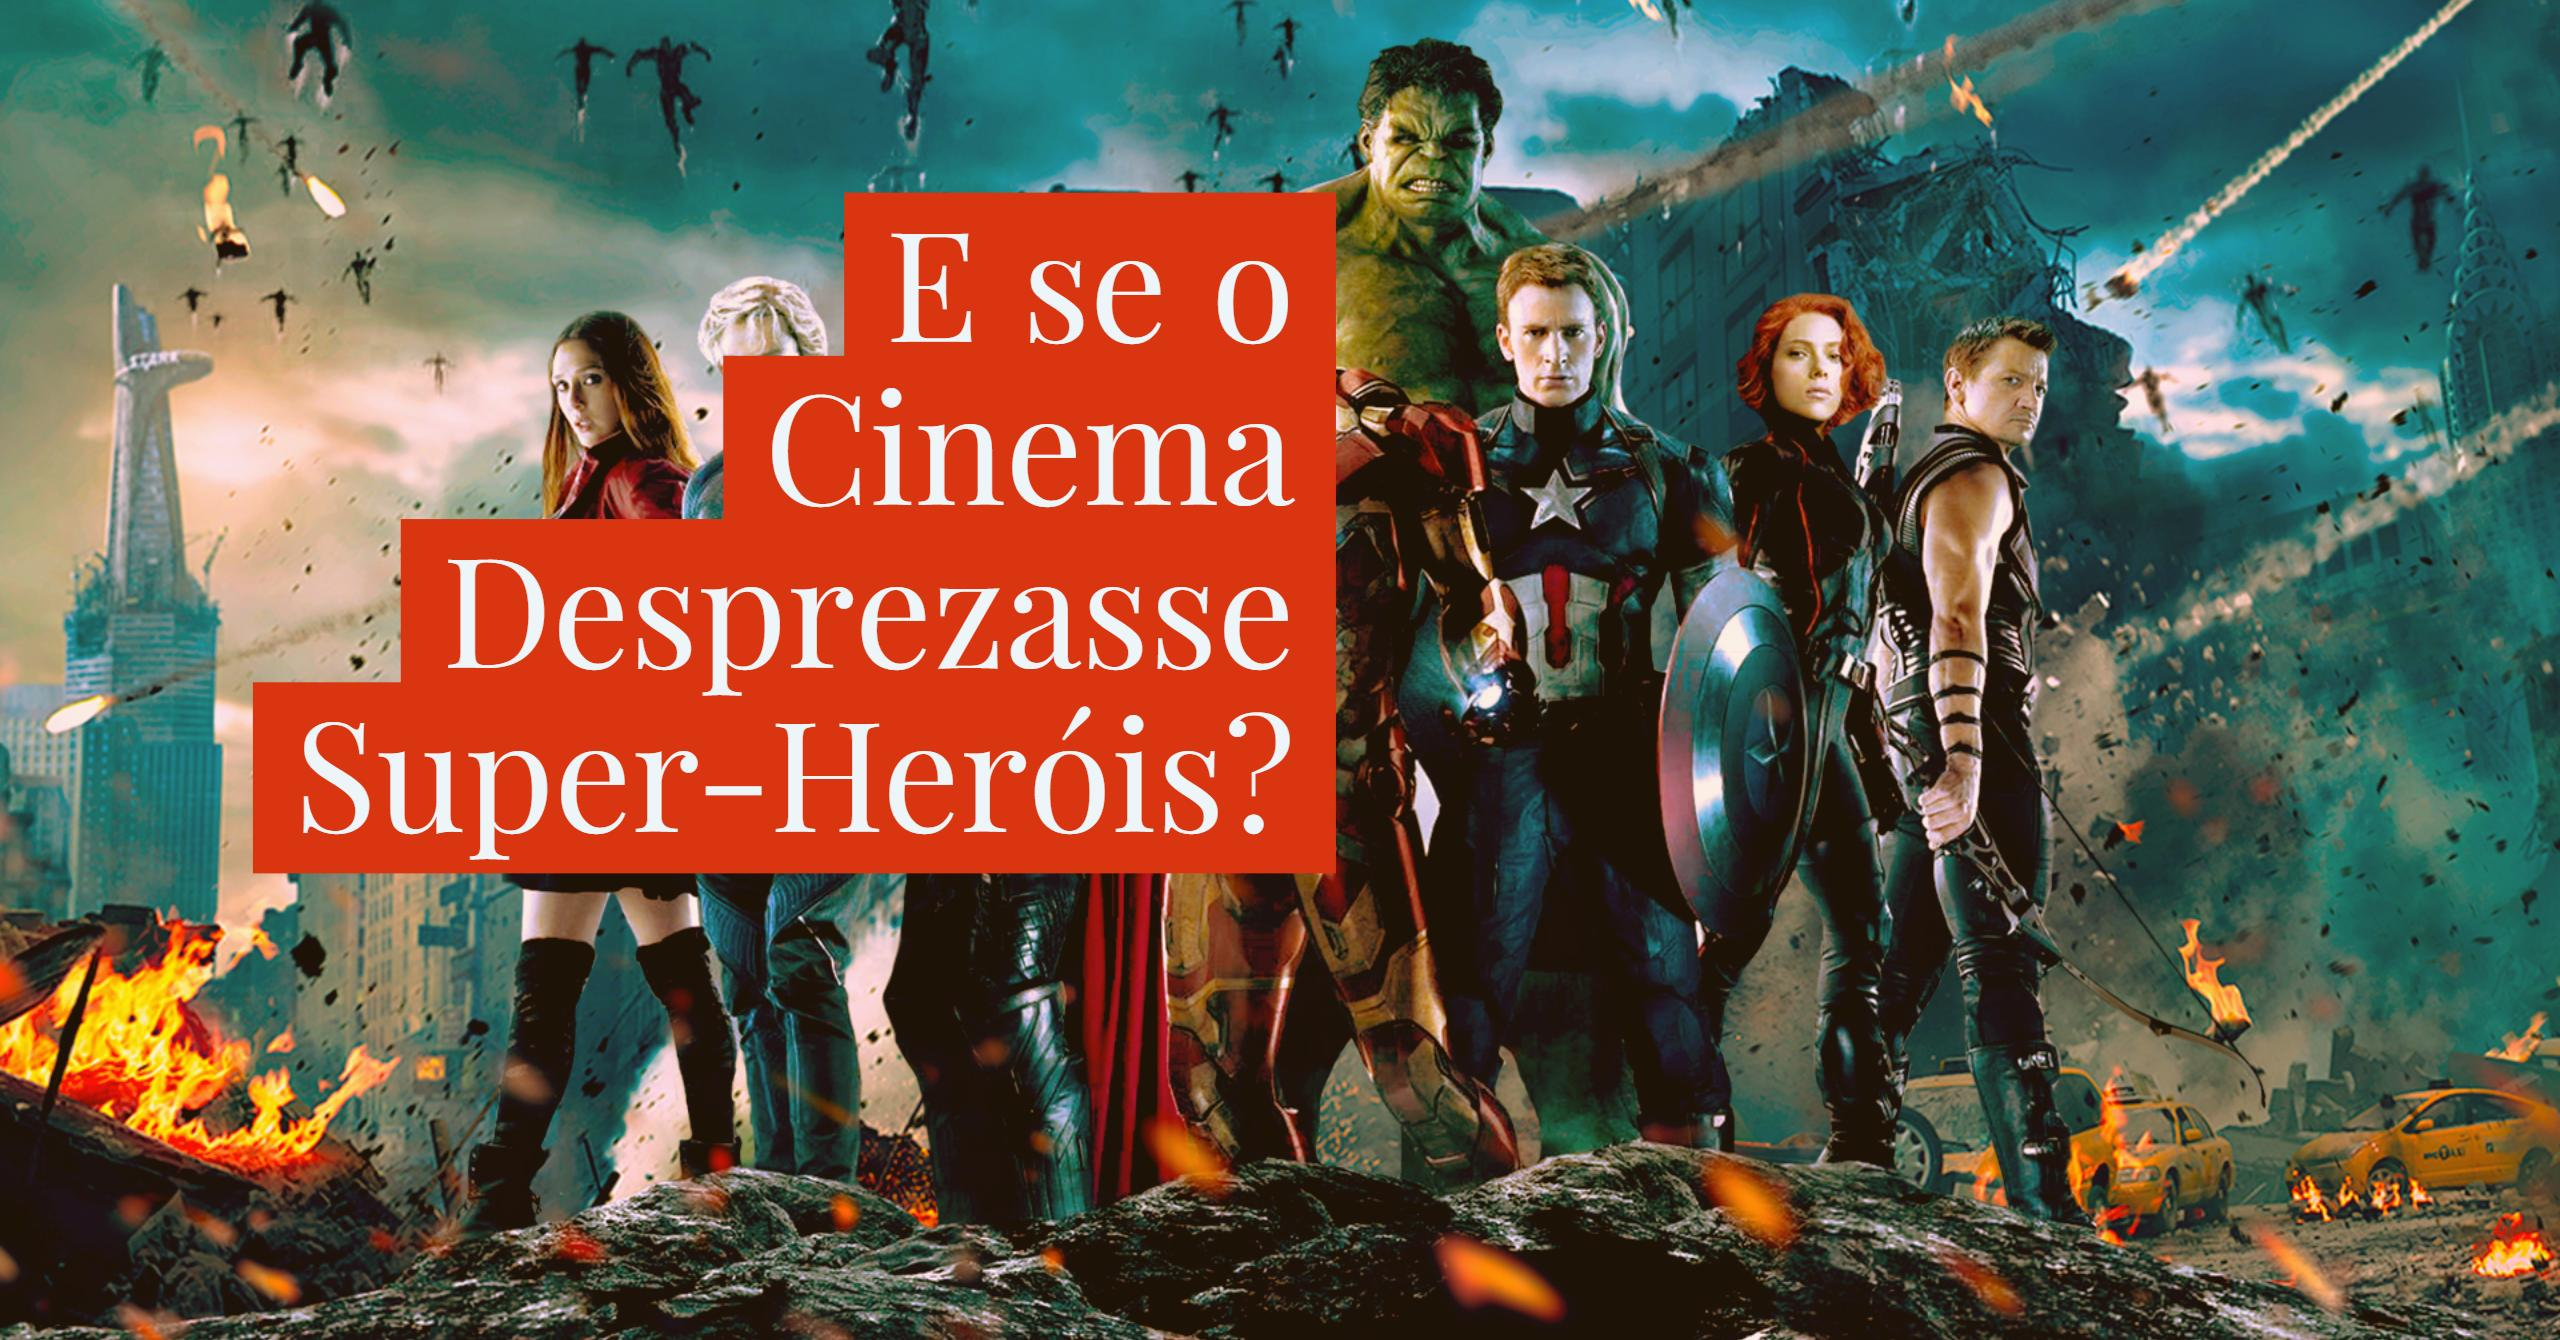 E se o Cinema Desprezasse Super-Heróis?